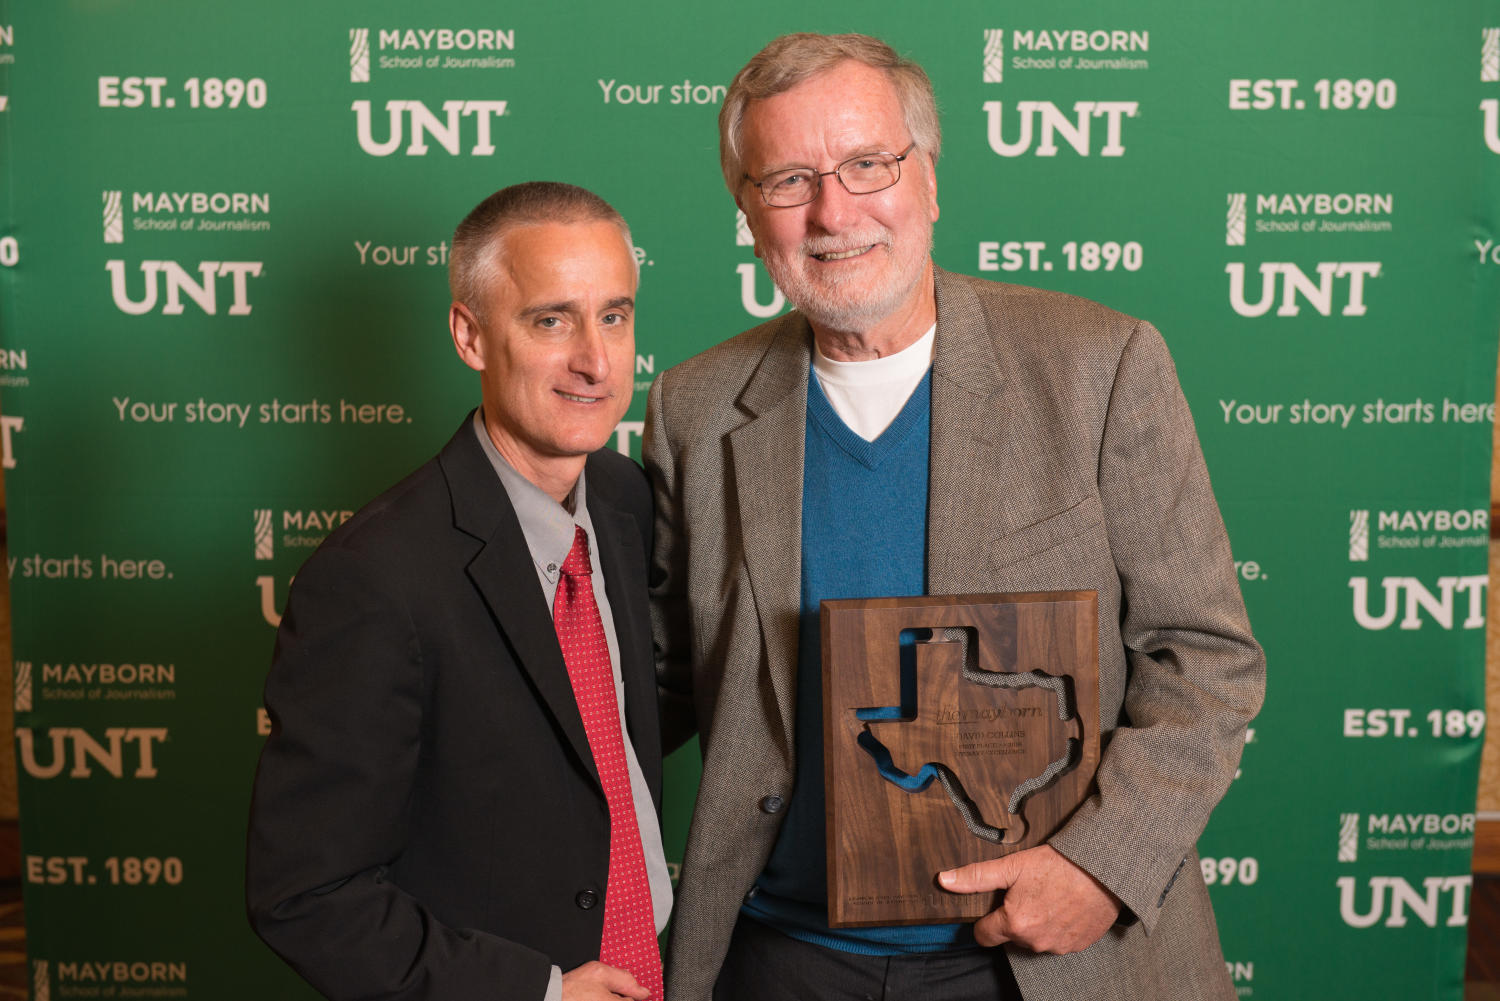 """[David Collins standing with guest and holding award], Photograph of David Collins standing with a guest in front of a UNT and Mayborn backdrop. He is holding the first place plaque for the Literary Excellence award, which he received for his book manuscript """"Accidental Texas Activists: Mark Phariss, Vic Holmes, and their Fight for Marriage Equality in the Lone Star State"""". The win granted him a provisional book contract with UNT Press and it was awarded to him at the Literary Lights Dinner during the Mayborn Literary Nonfiction Conference. The dinner was held in the International Ballroom at the Hilton DFW Lakes Executive Conference Center, Grapevine, TX.,"""